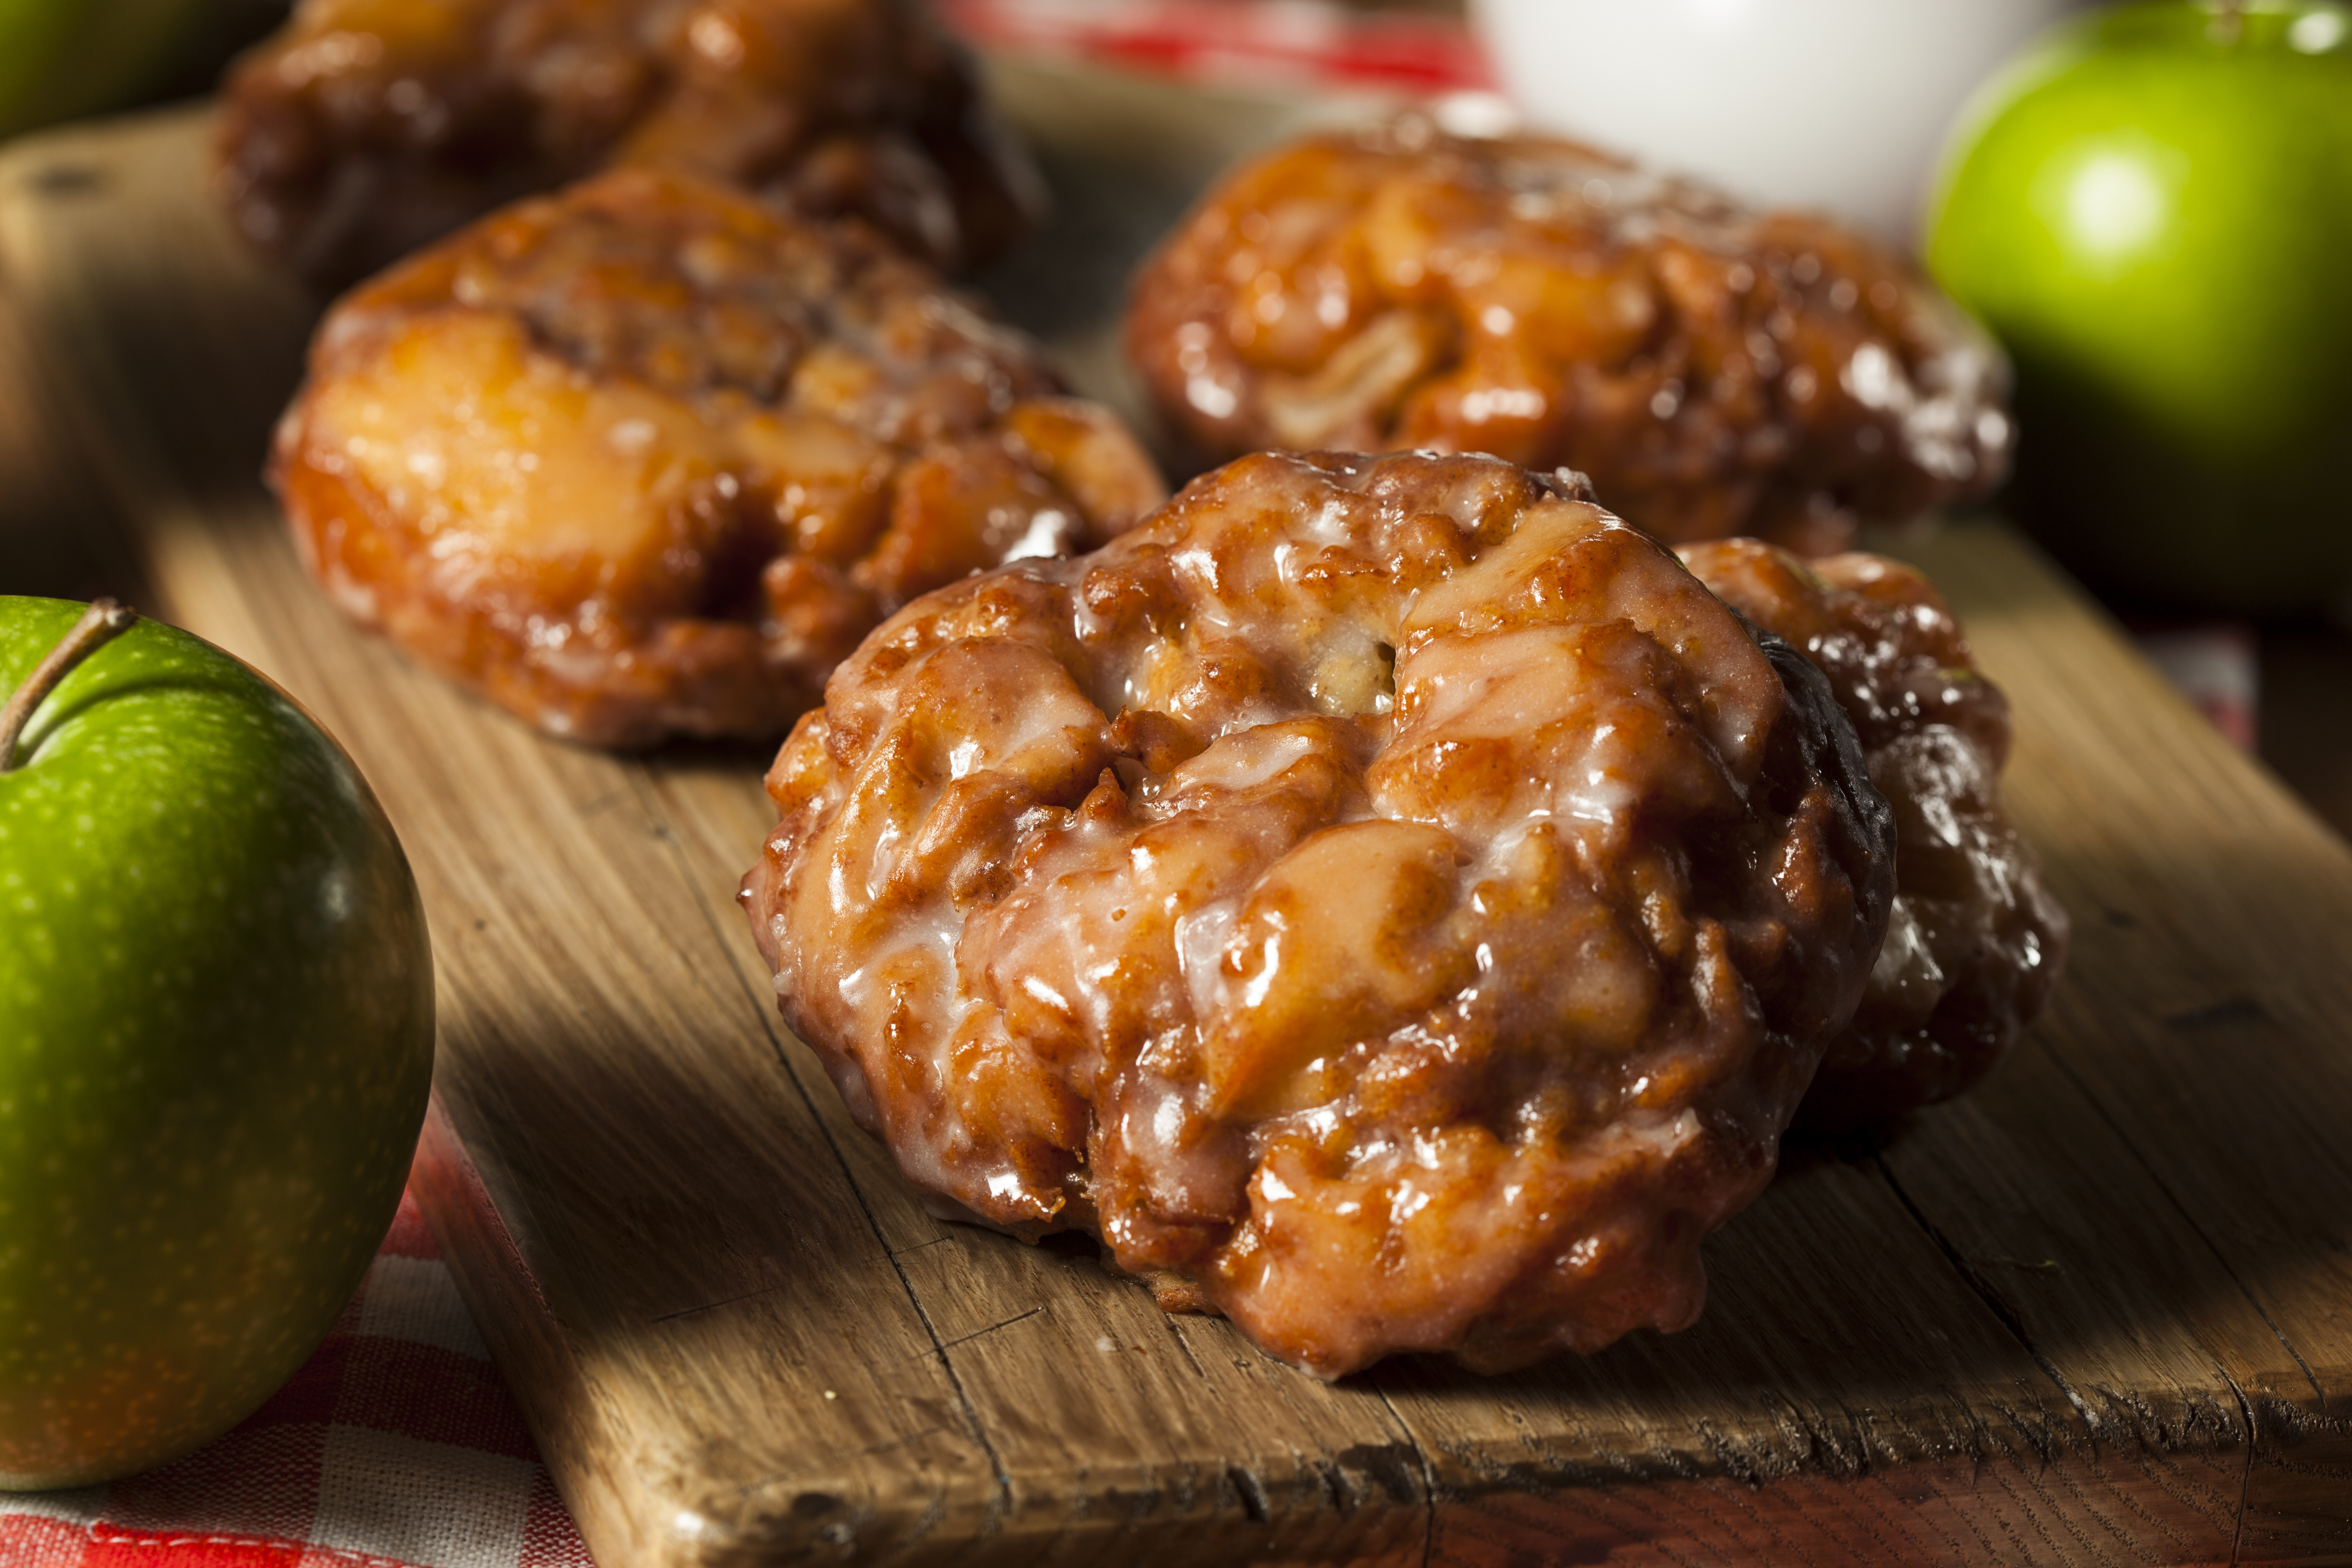 Apple Fritters w/ Creme Anglaise Sauce